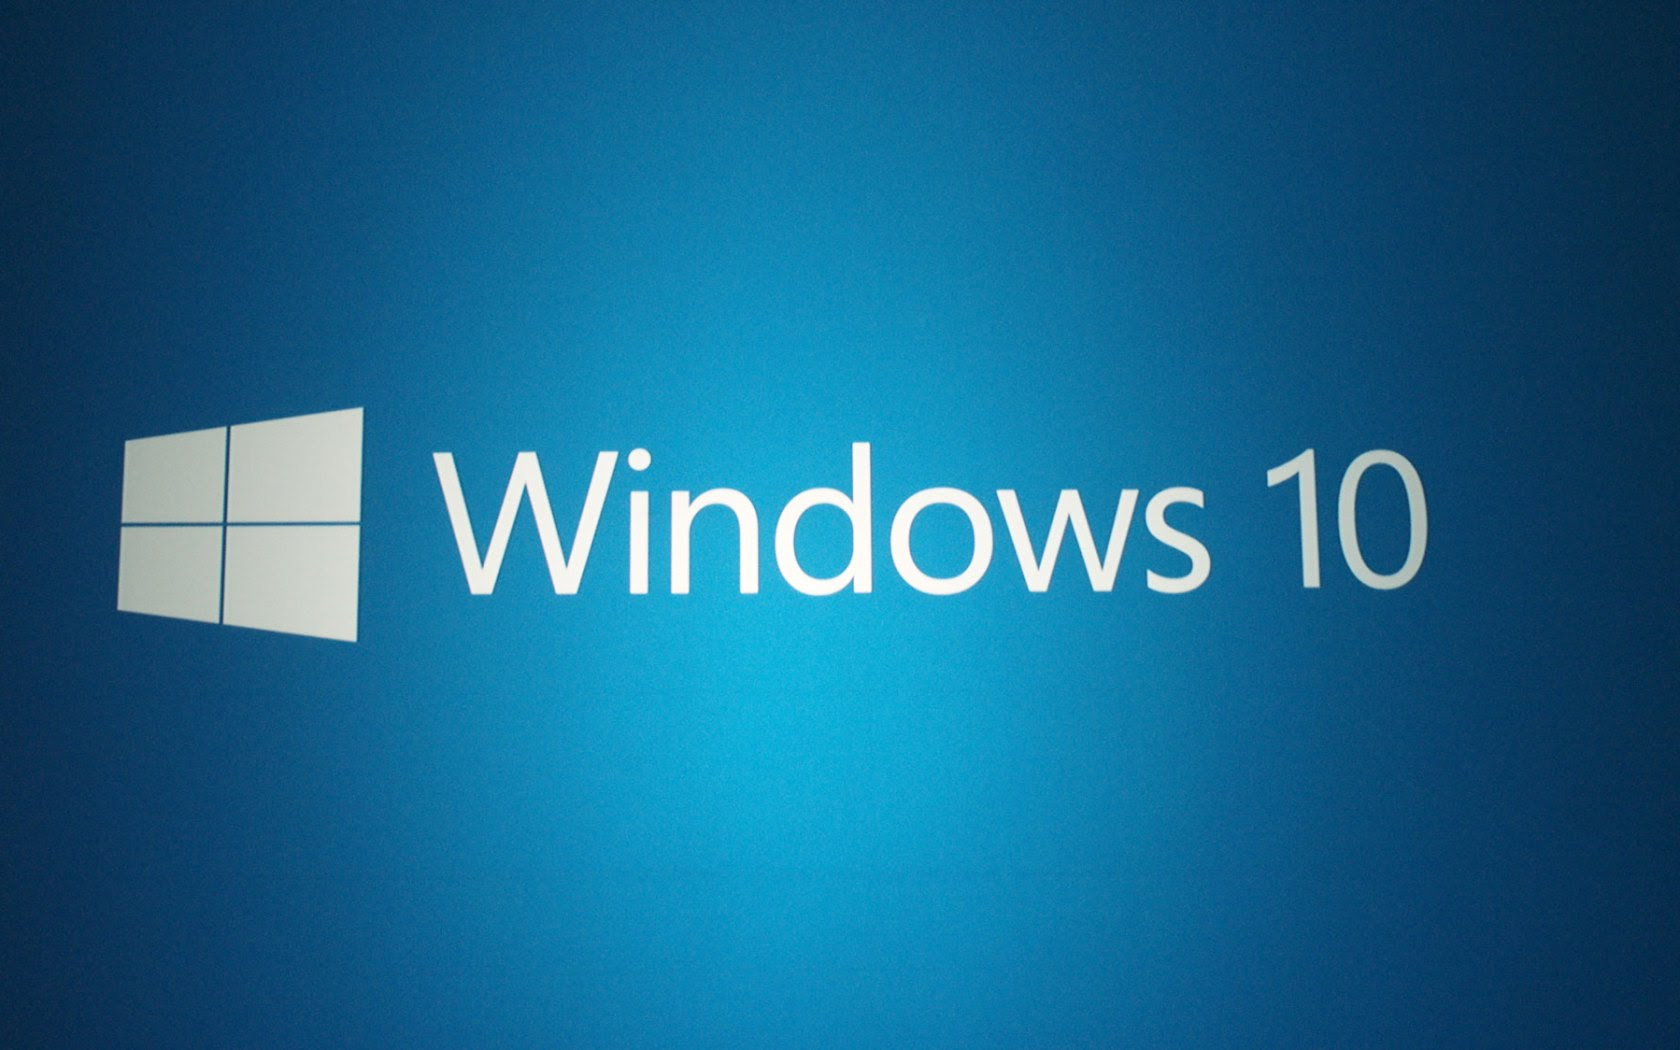 This is Your Last Chance to get Windows 10 Free